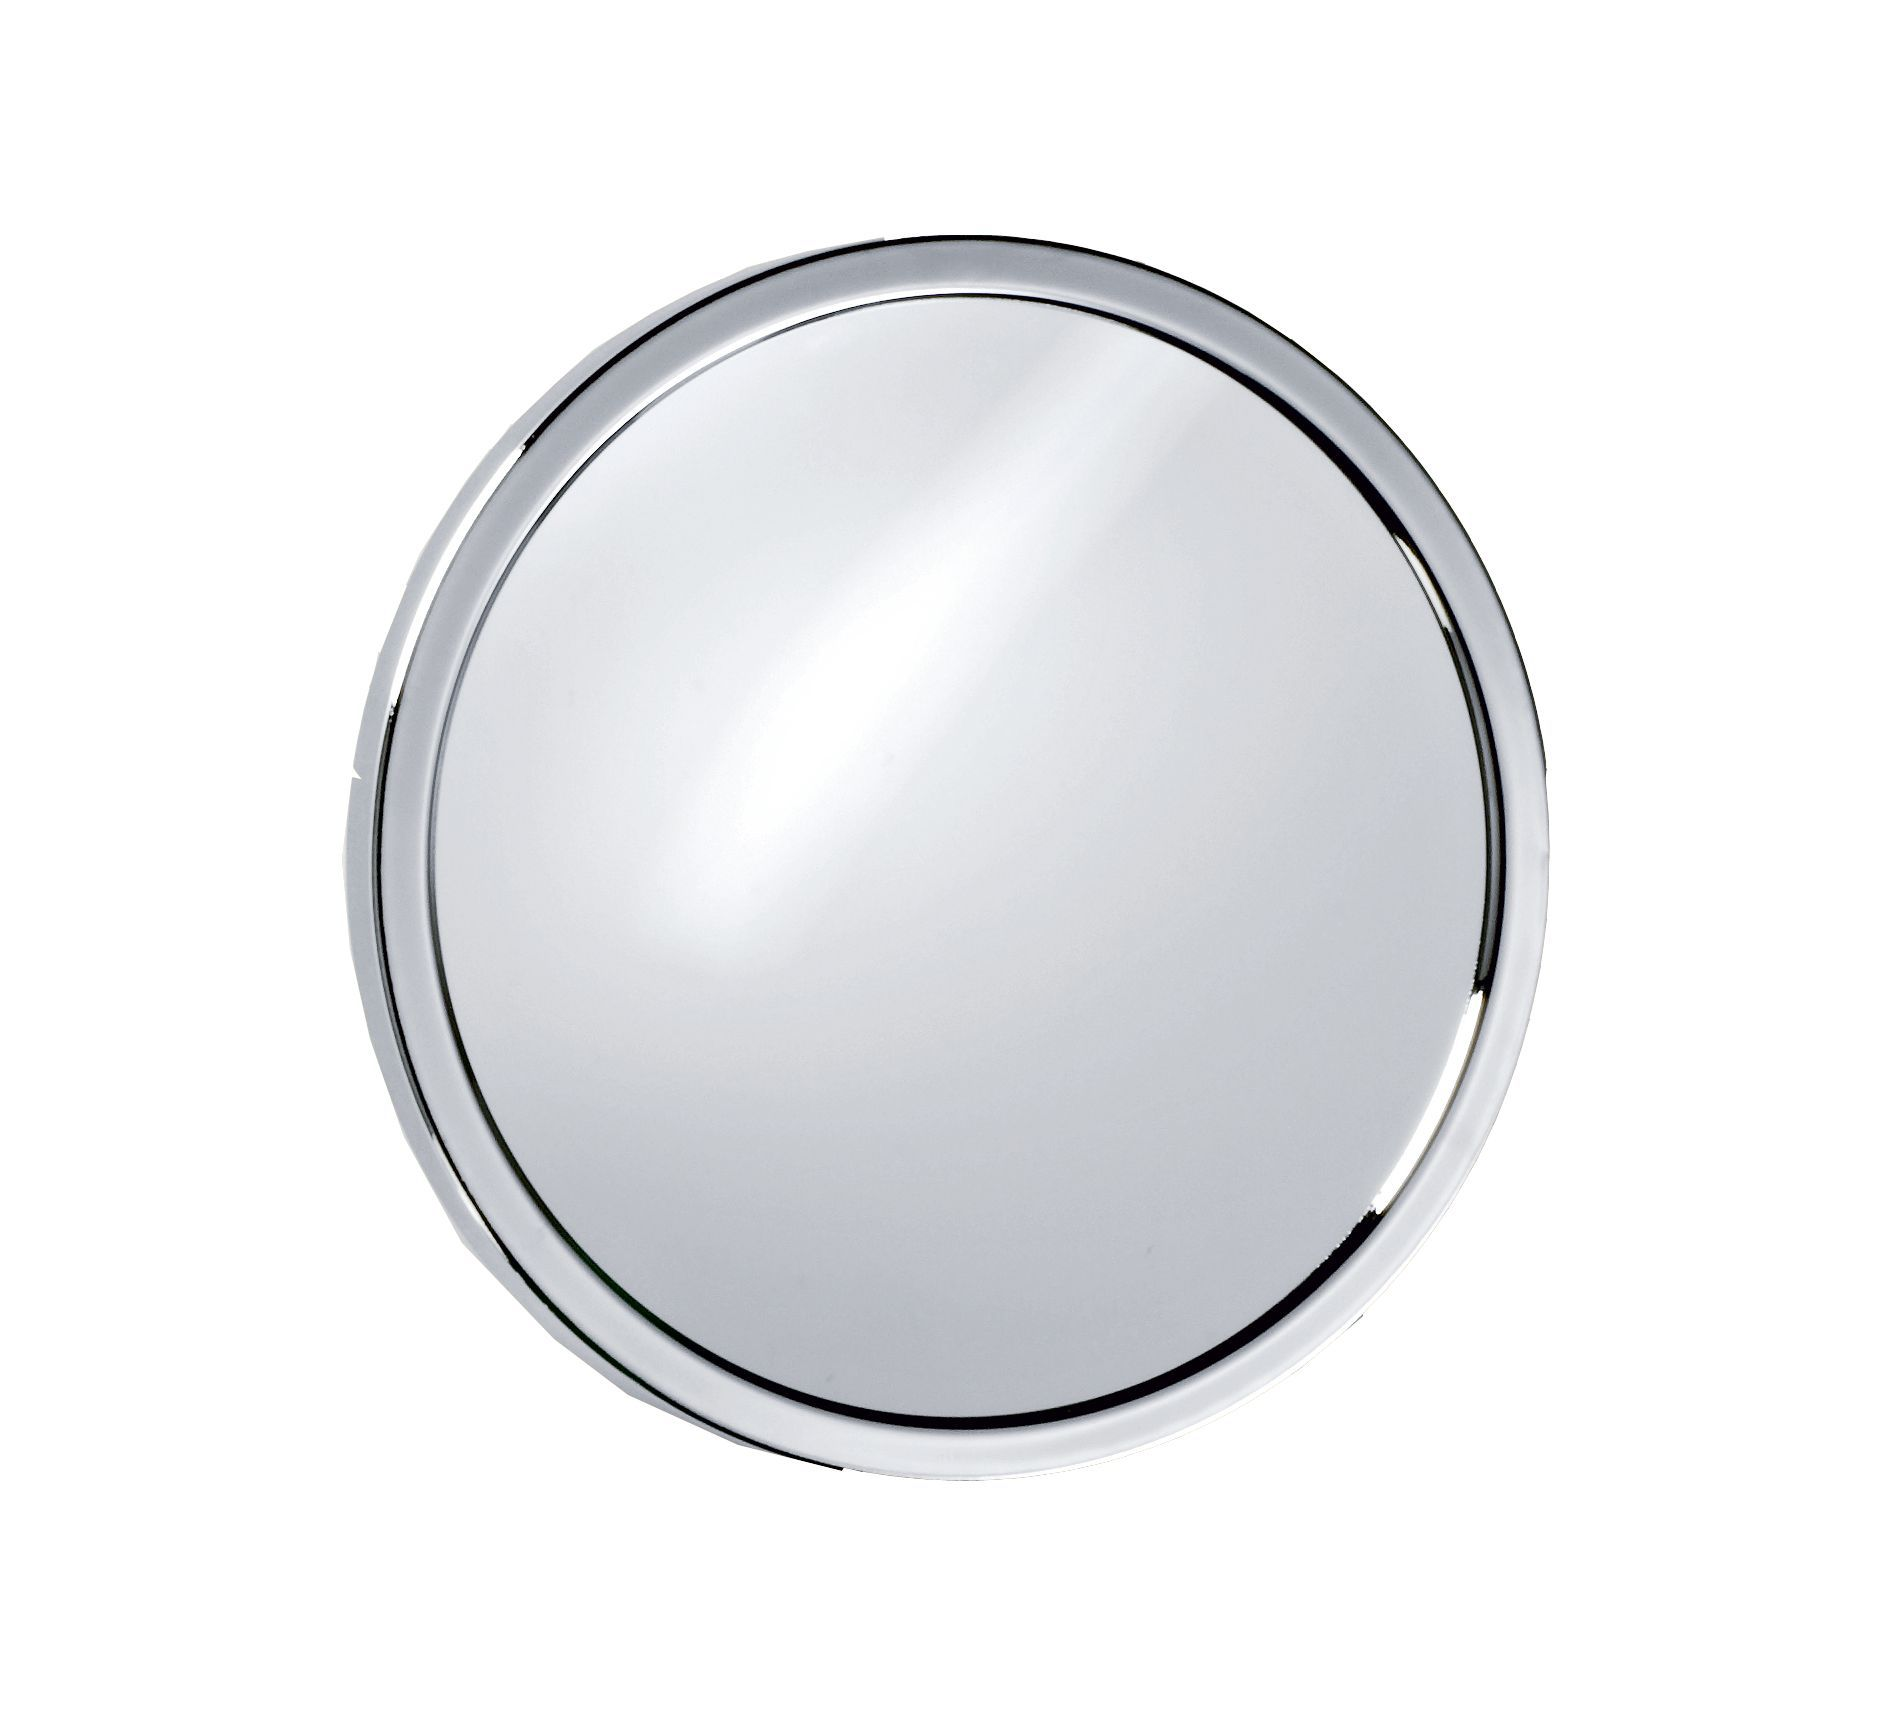 Dwba Round Suction Cup 5x Cosmetic Makeup Magnifying Mirror